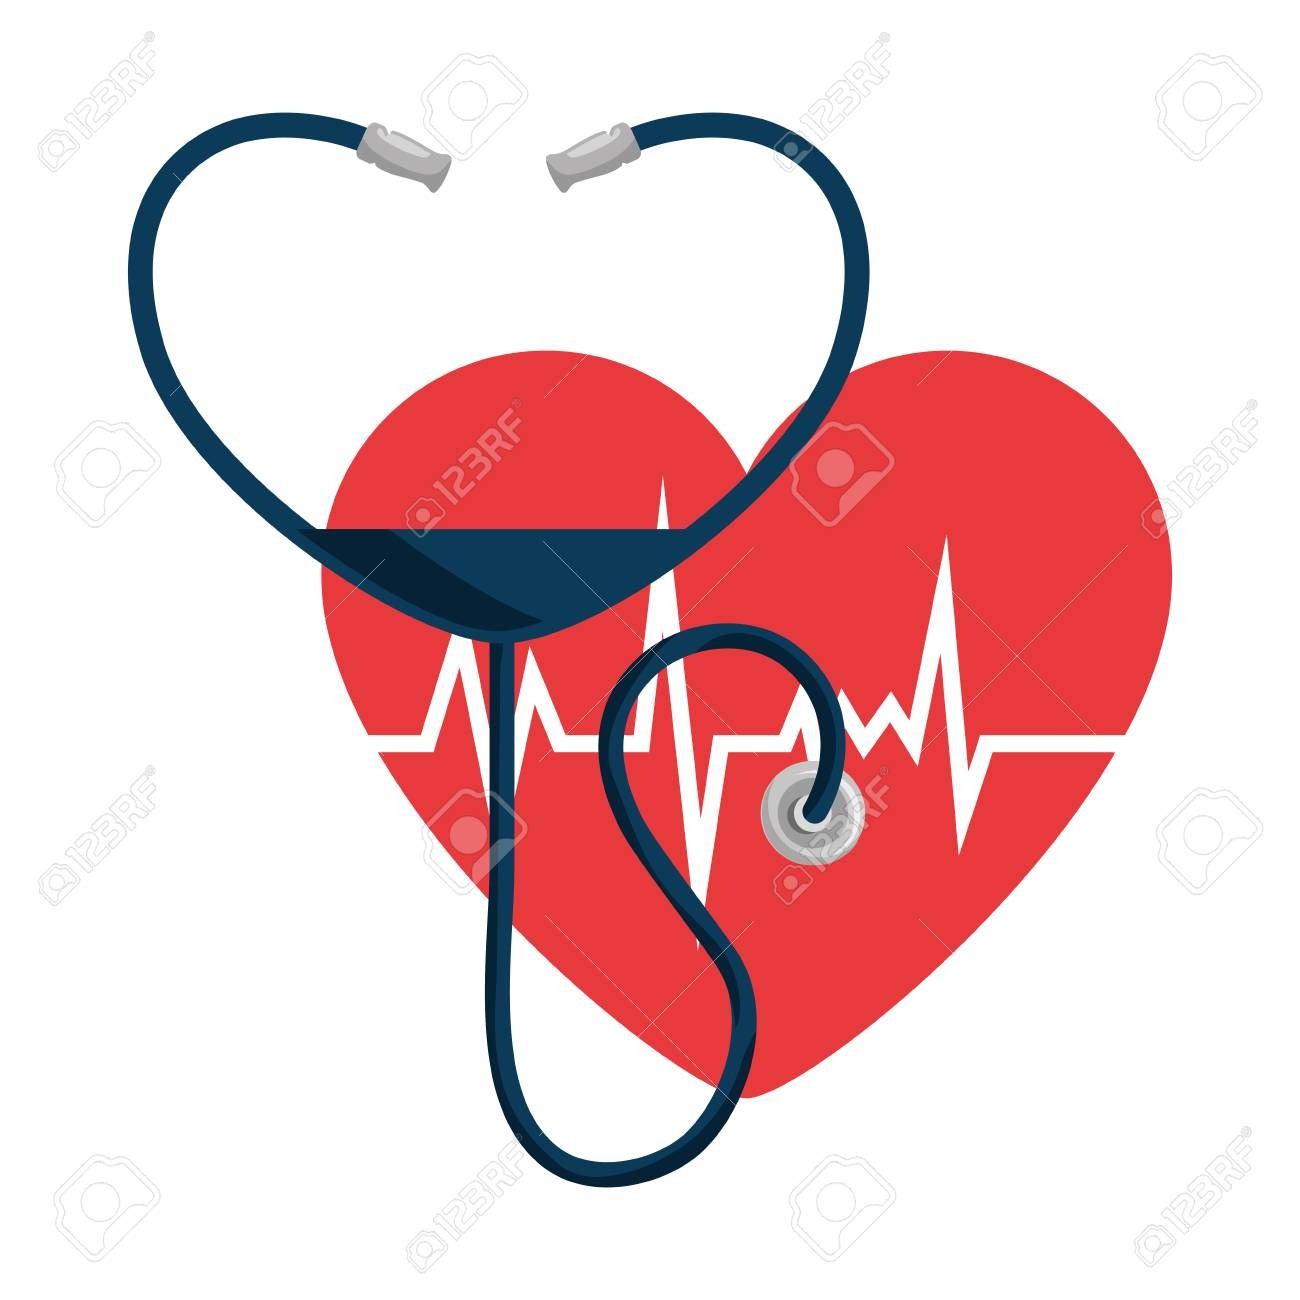 heart with stethoscope medical vector illustration design royalty rh 123rf com medical heart icon vector medical heart icon vector